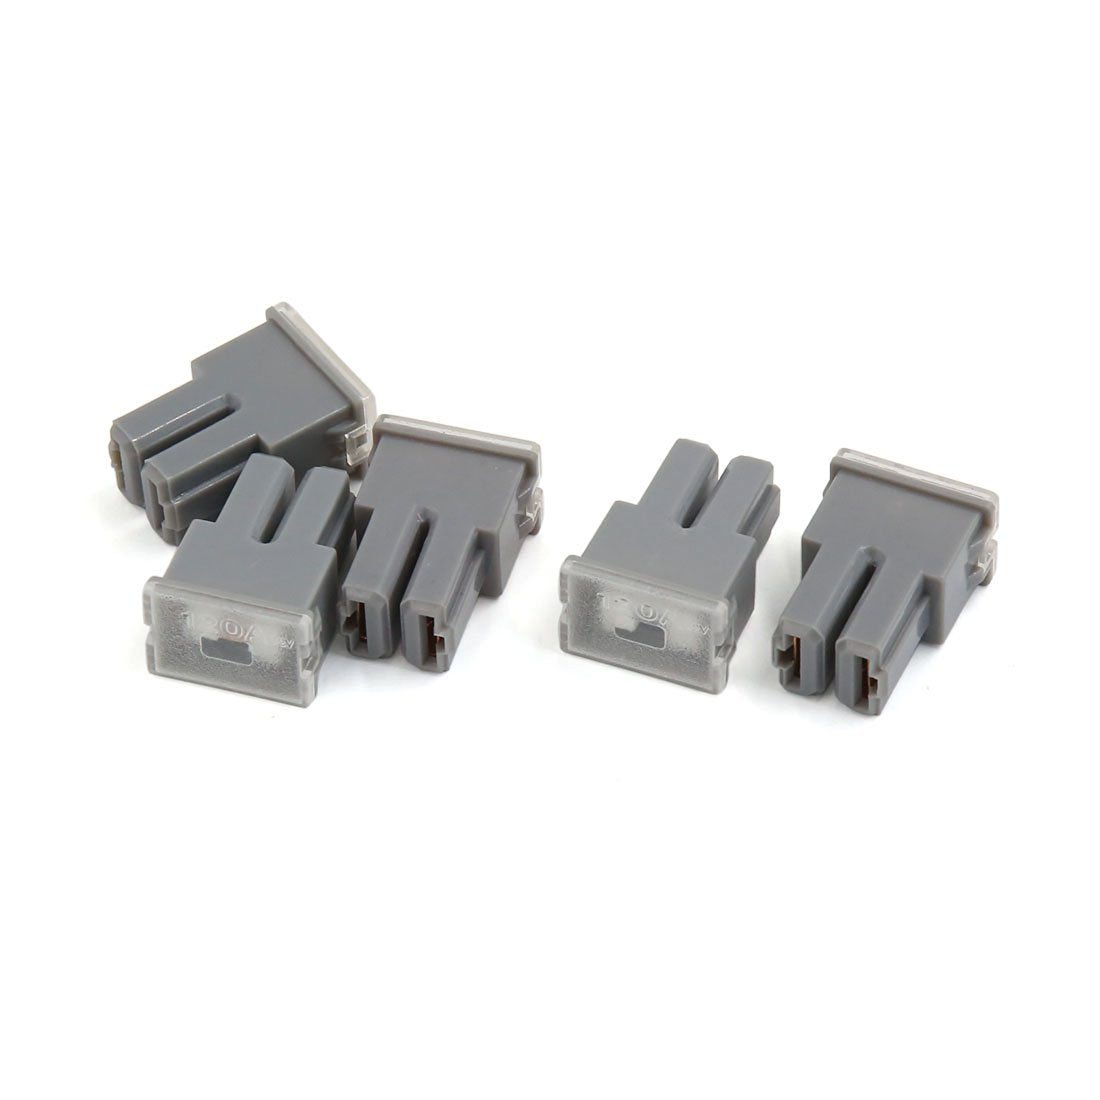 hight resolution of uxcell gray casing 120a 32v pacific female plug type cartridge pal fuses 5pcs